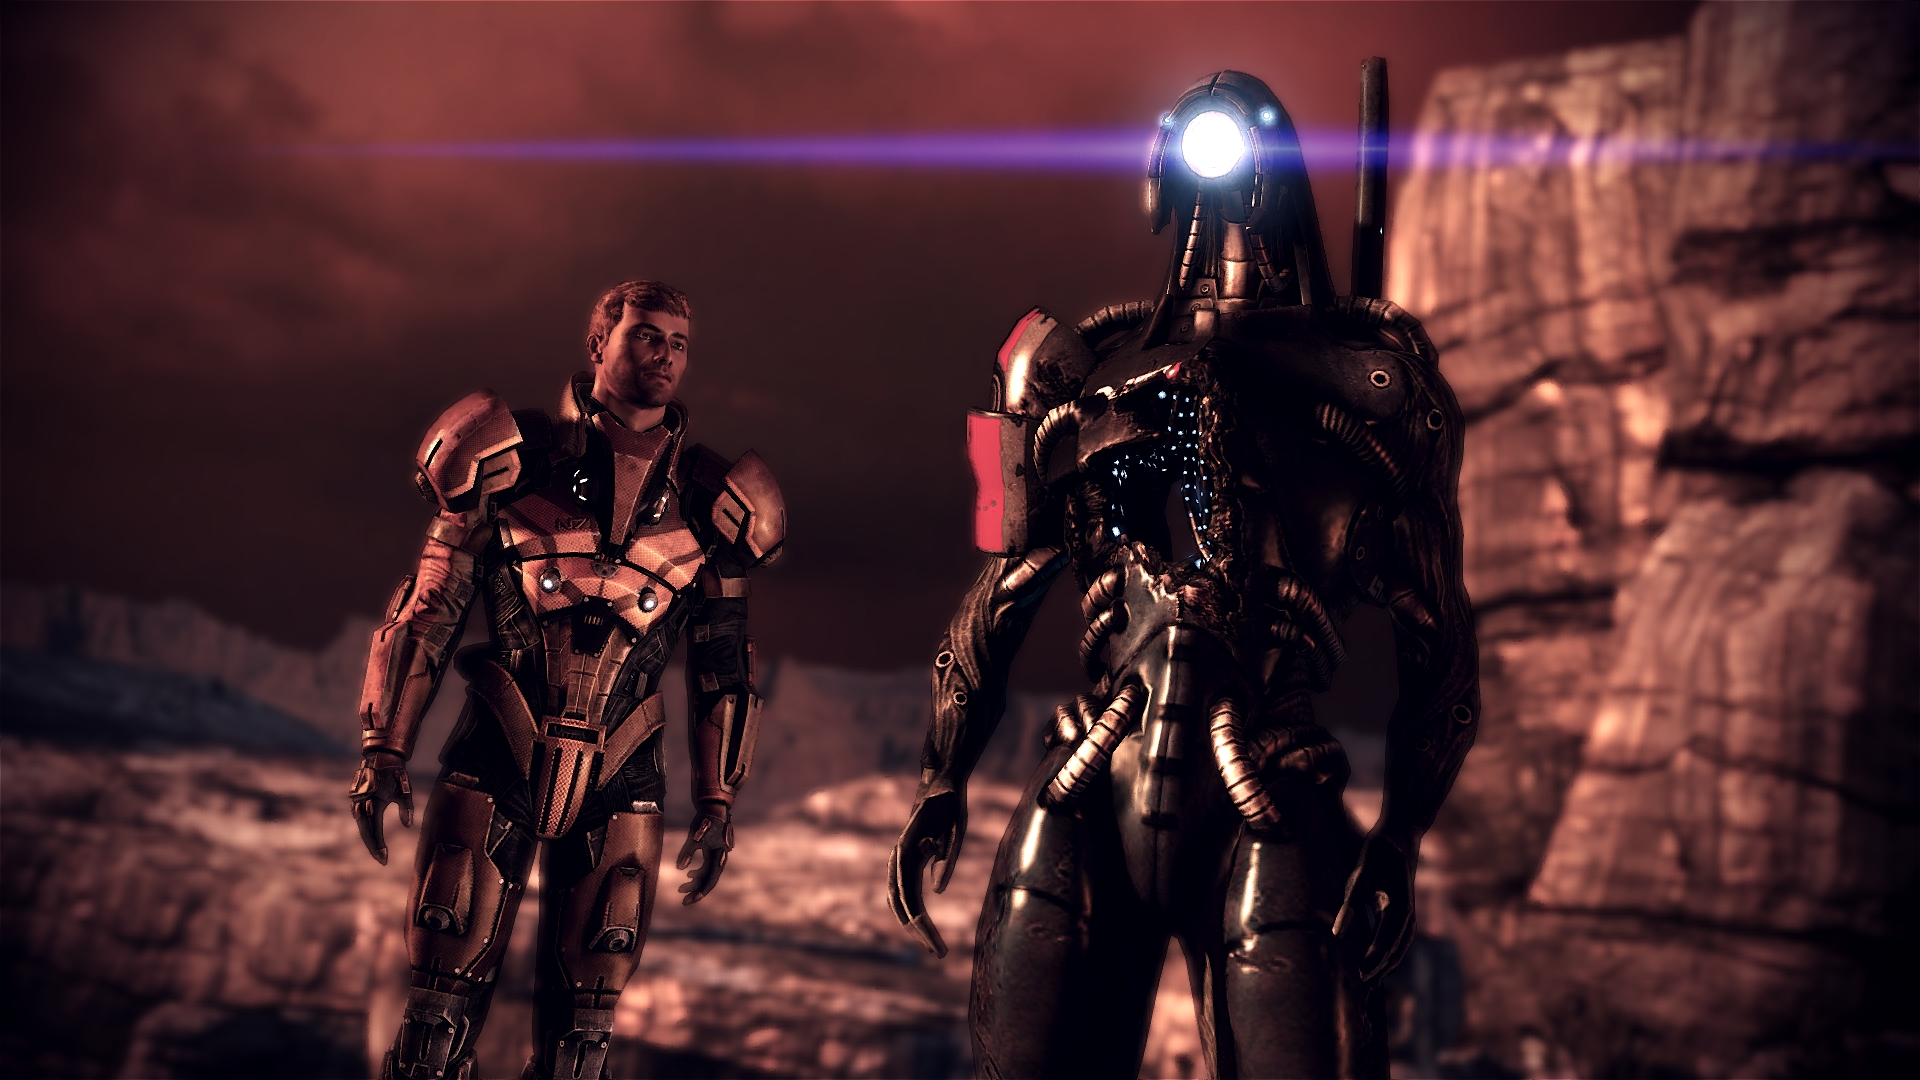 Rannoch Mass Effect 3 Foto 30498323 Fanpop